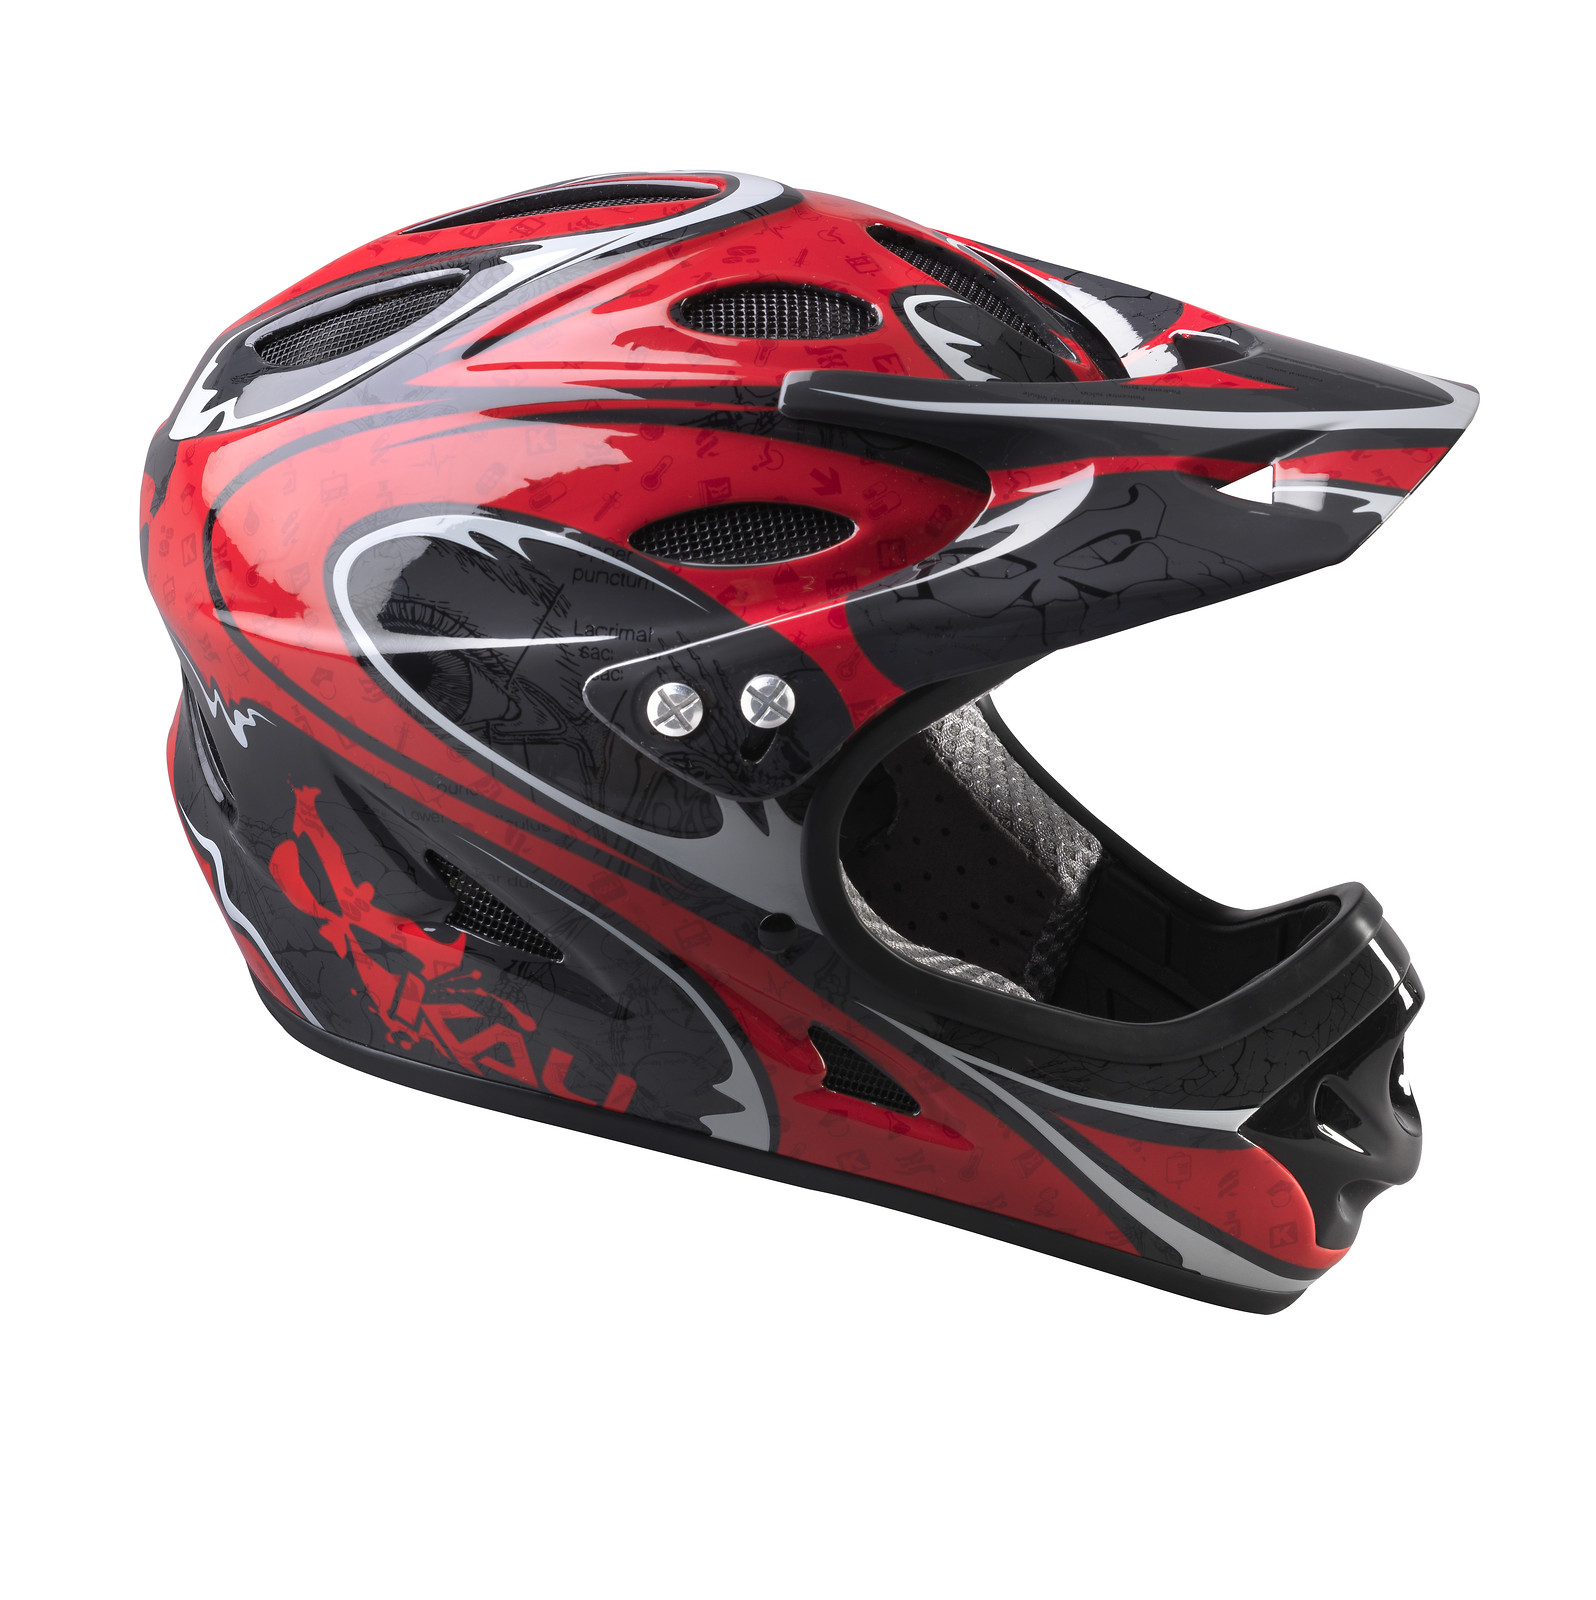 Kali Protectives Durgana Full Face Helmet blackintegdurganright